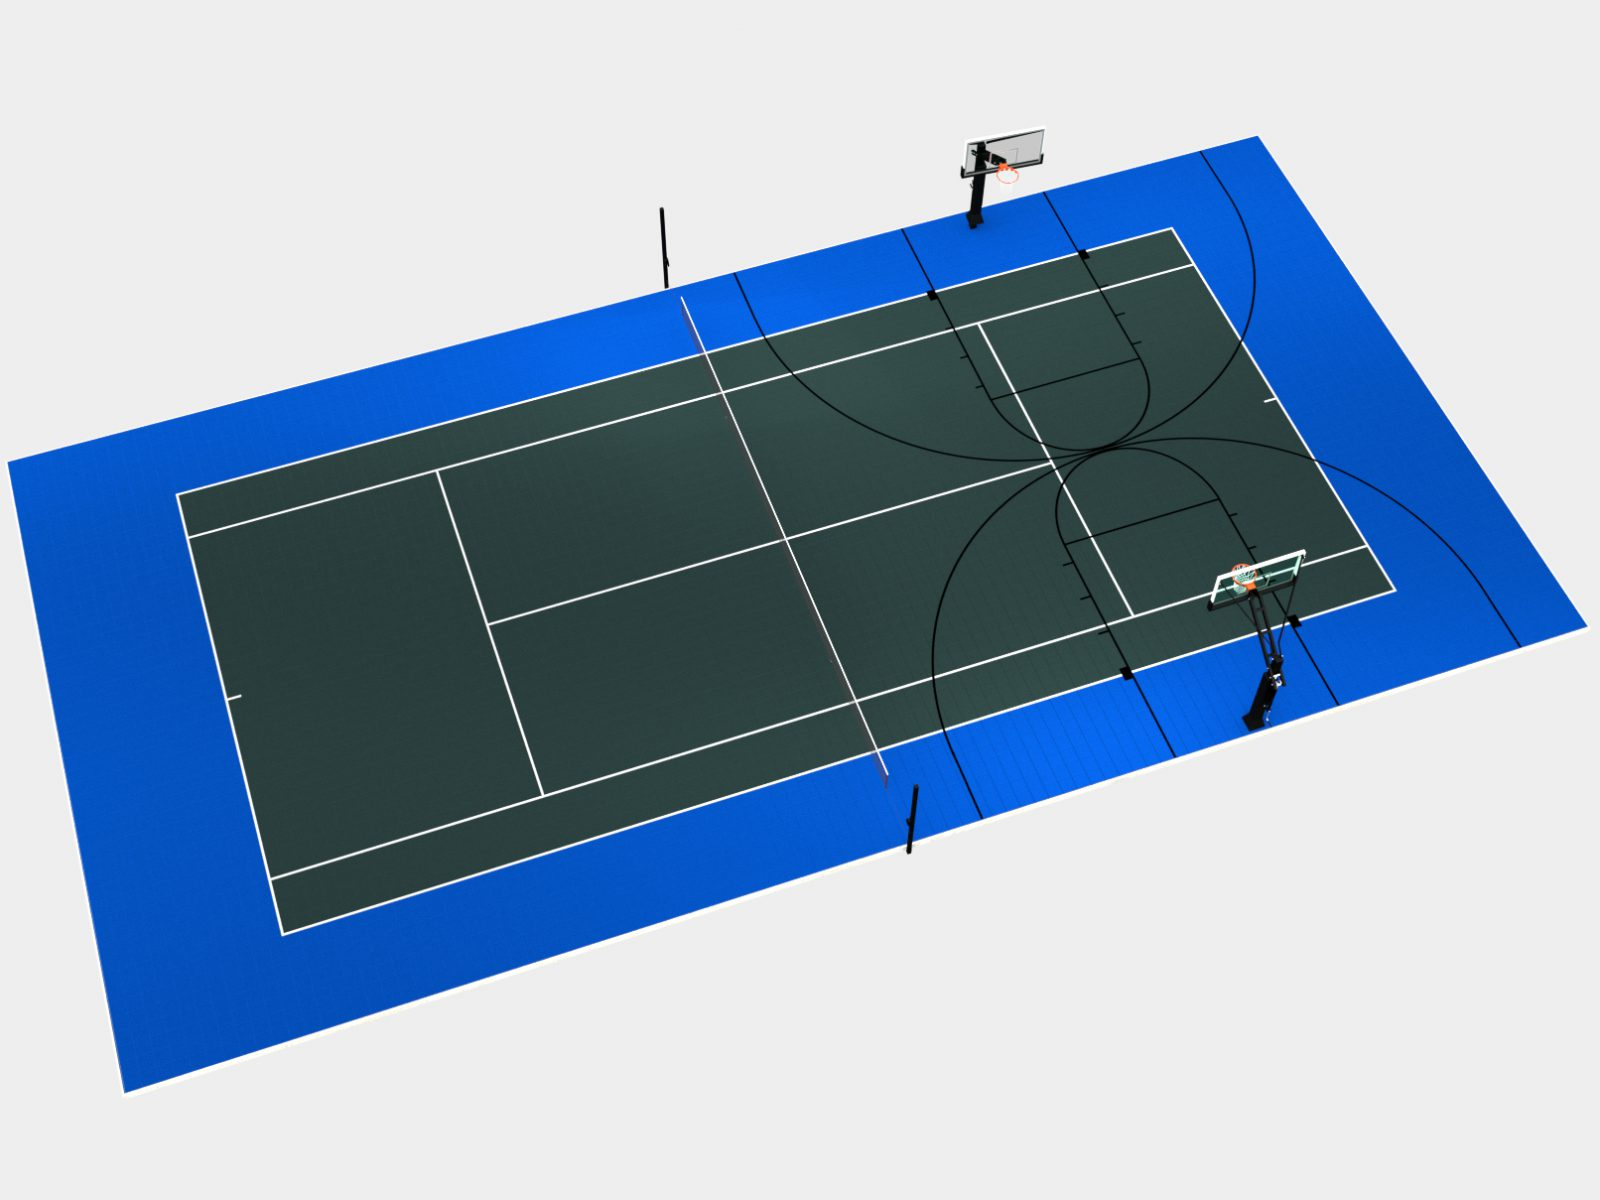 100' x 50' Multi-court with tennis and two basketball courts